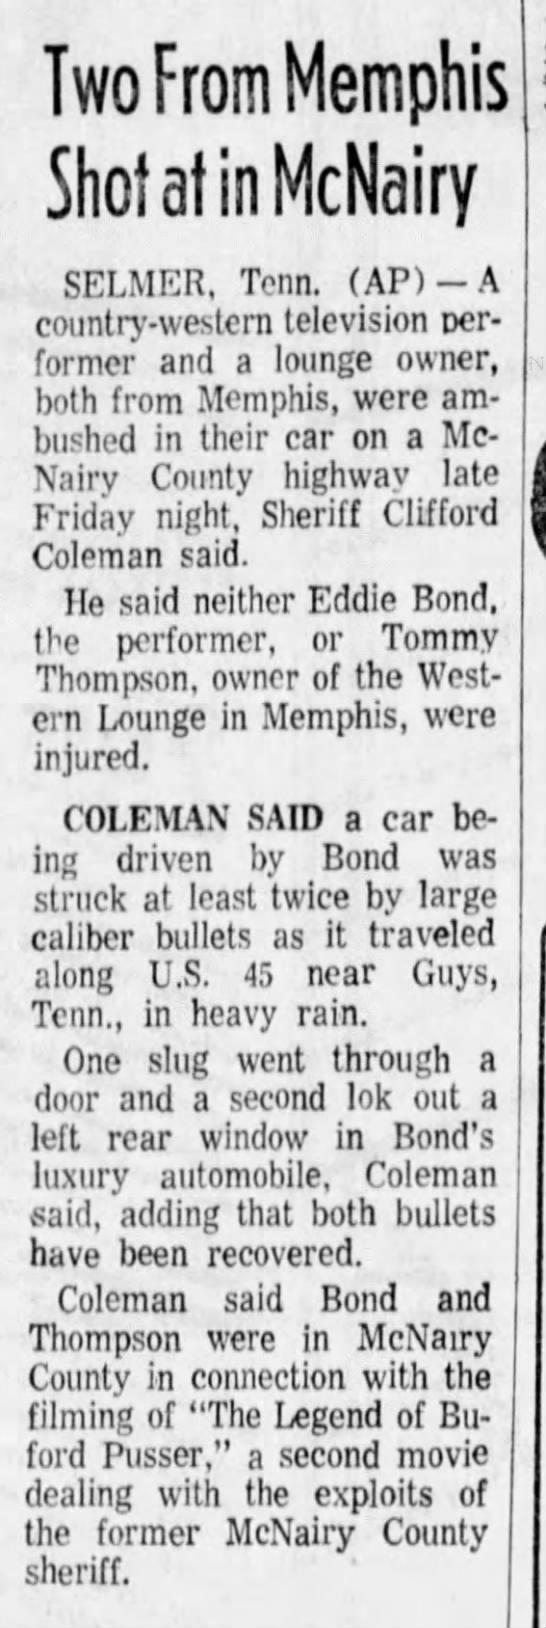 1974-05-05 TENNESSEAN Two From Memphis Shot at in McNairy_13A